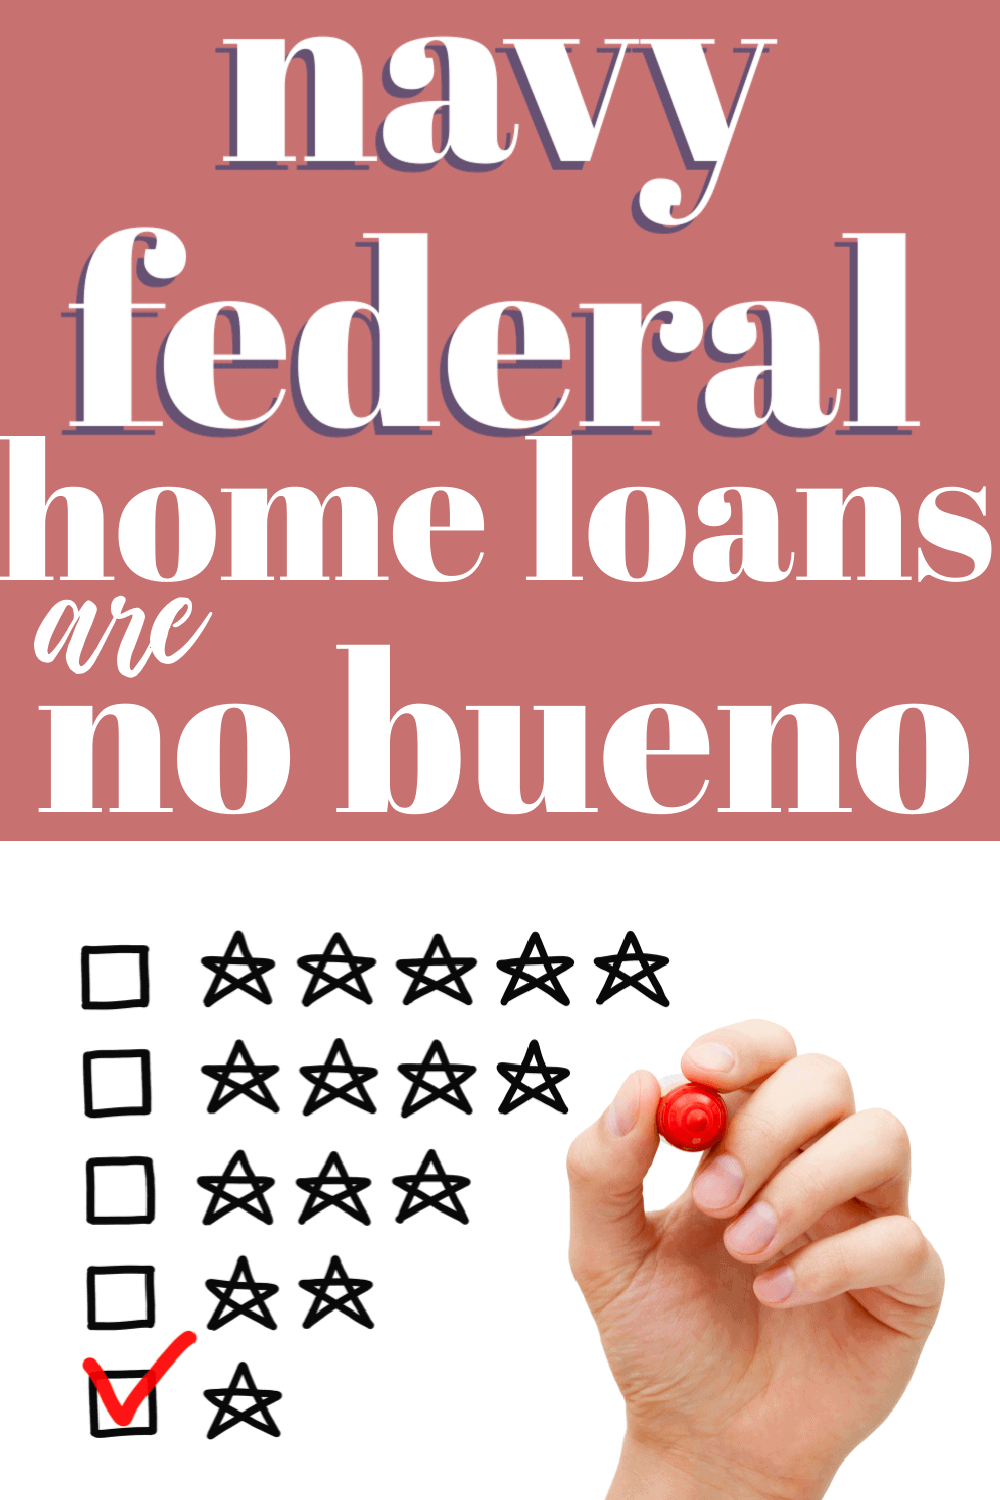 Navy Federal Credit Union Home Loans are a Nightmare